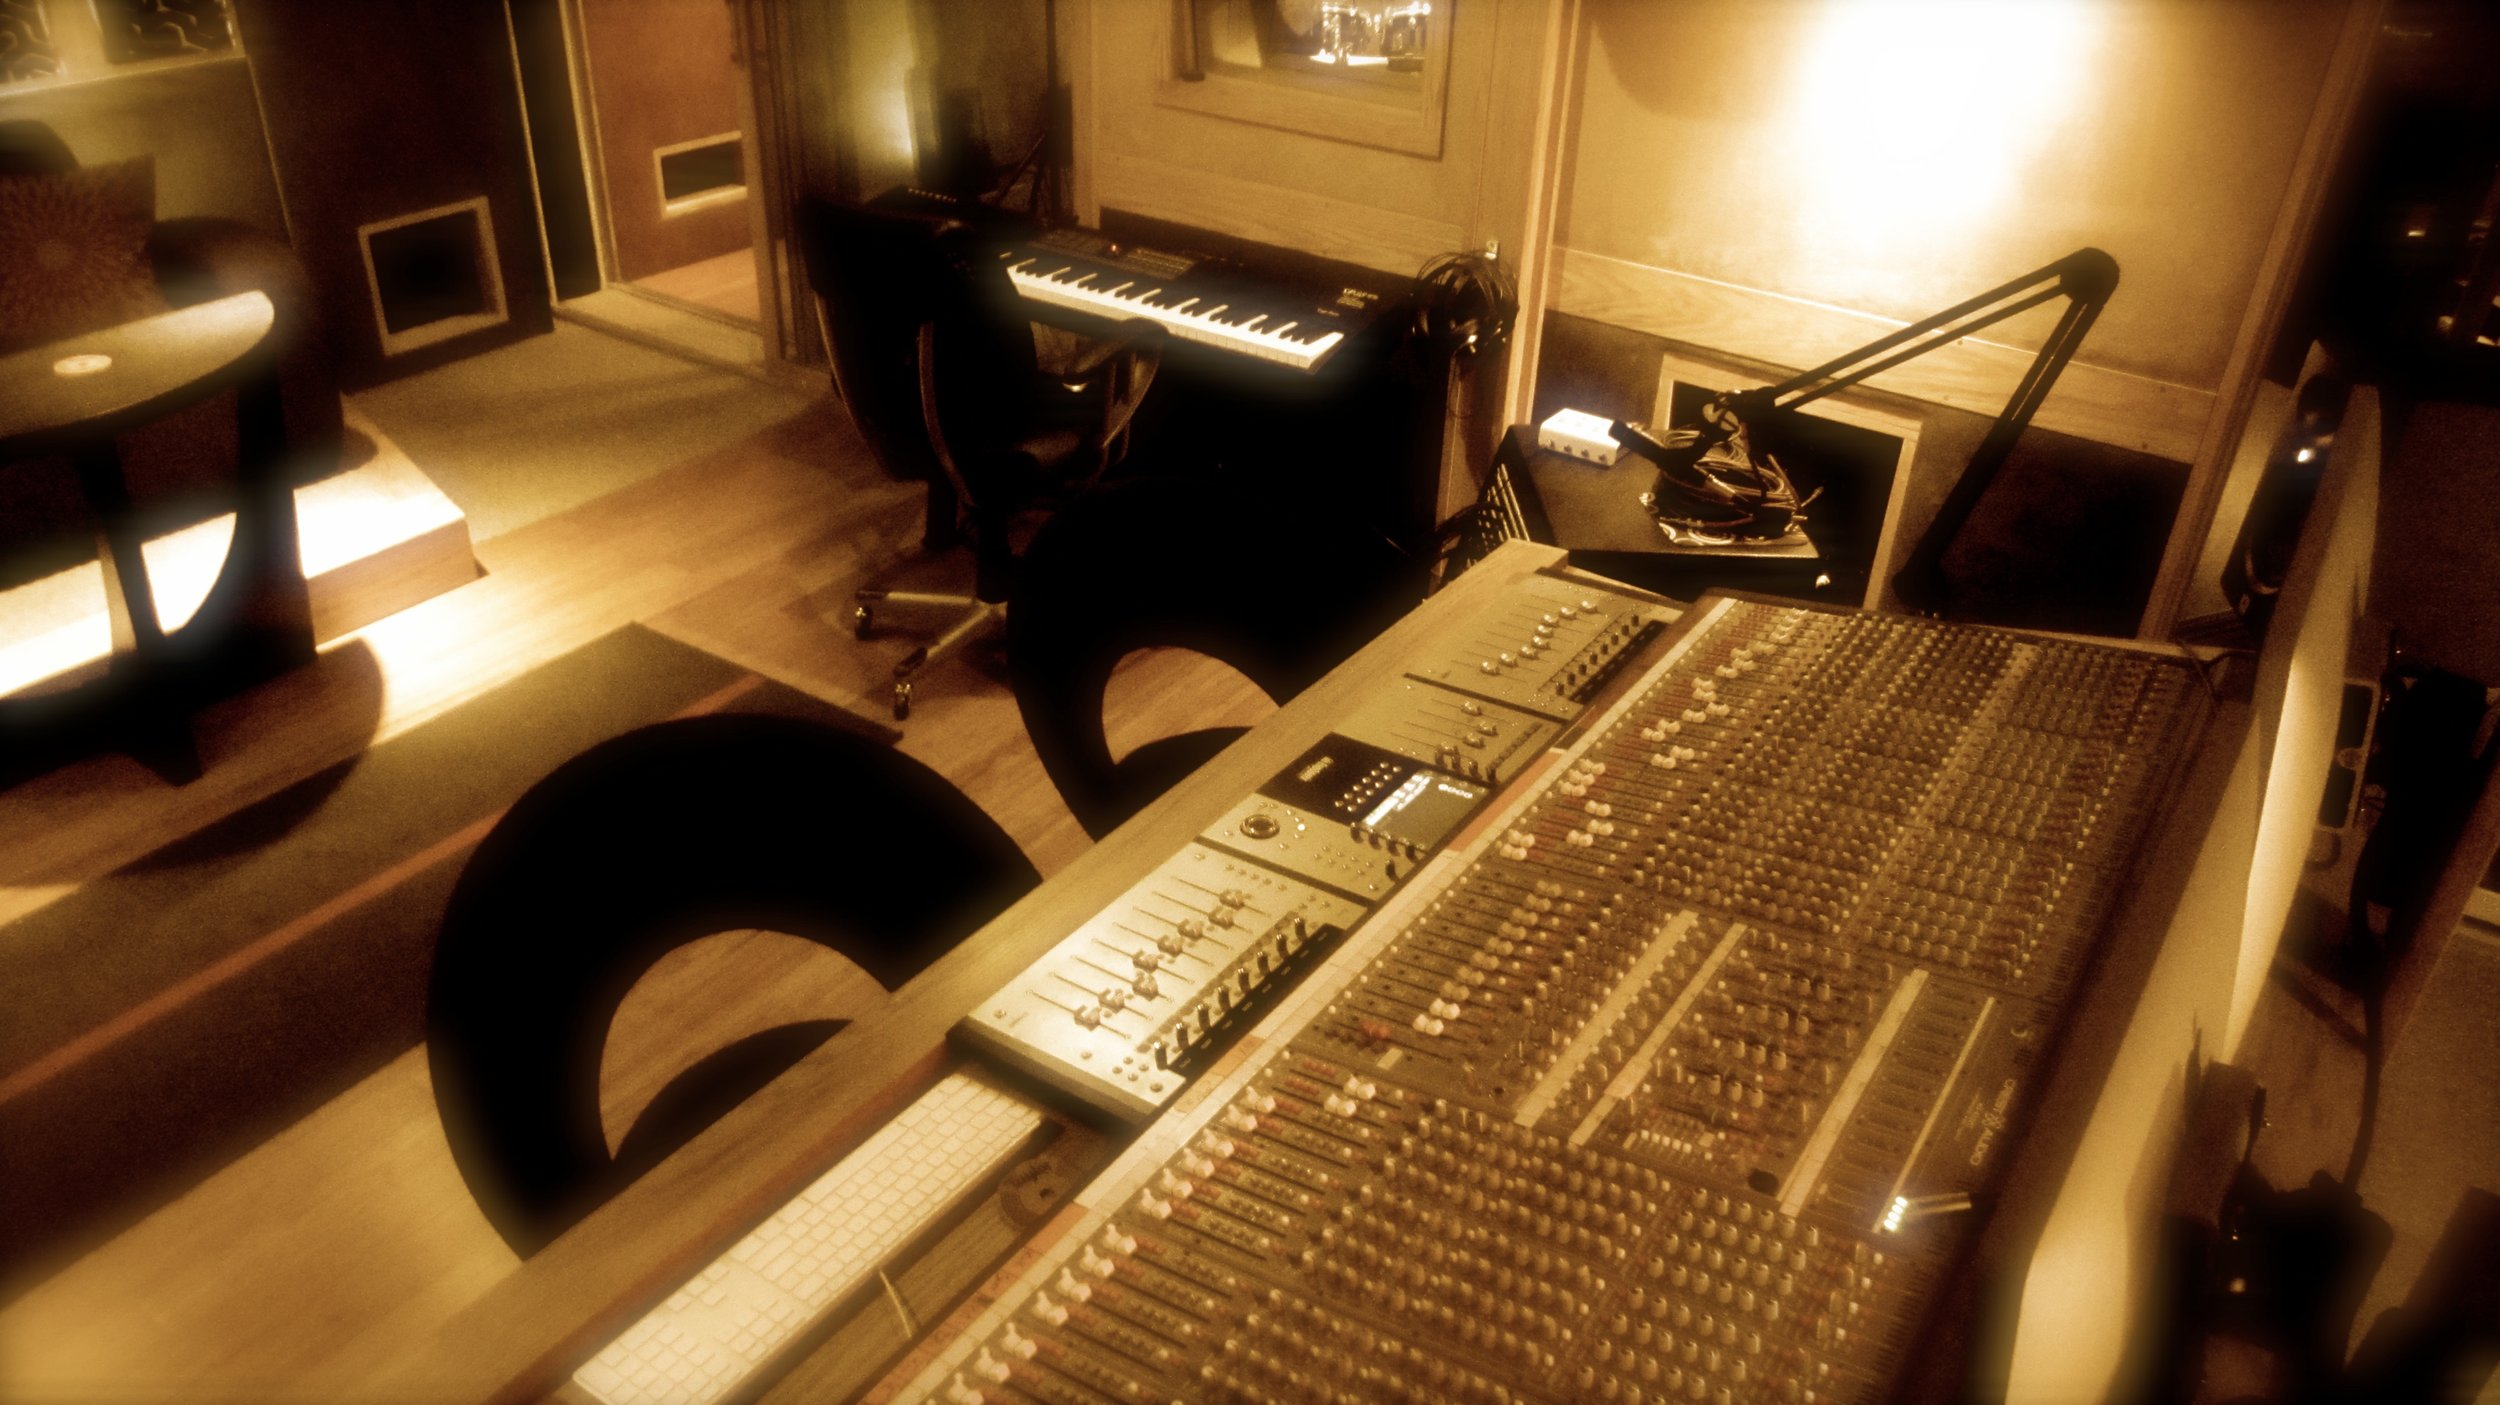 2) Opera Lessons & Recording Session Experience